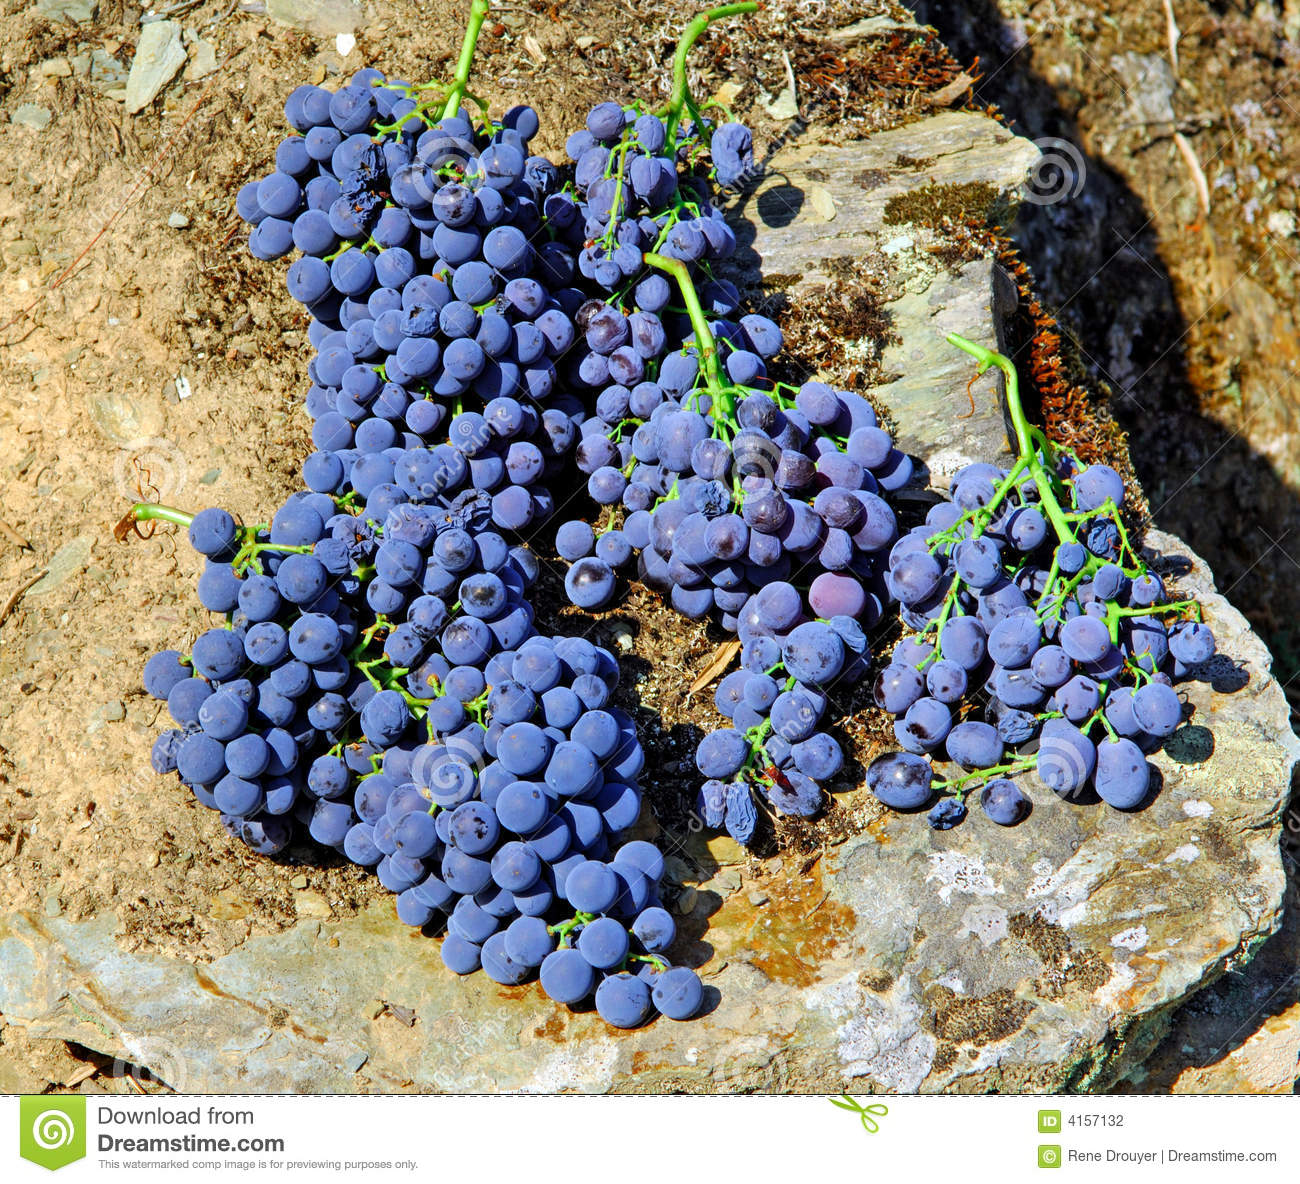 Portugal, Douro; geerntetes Grappe